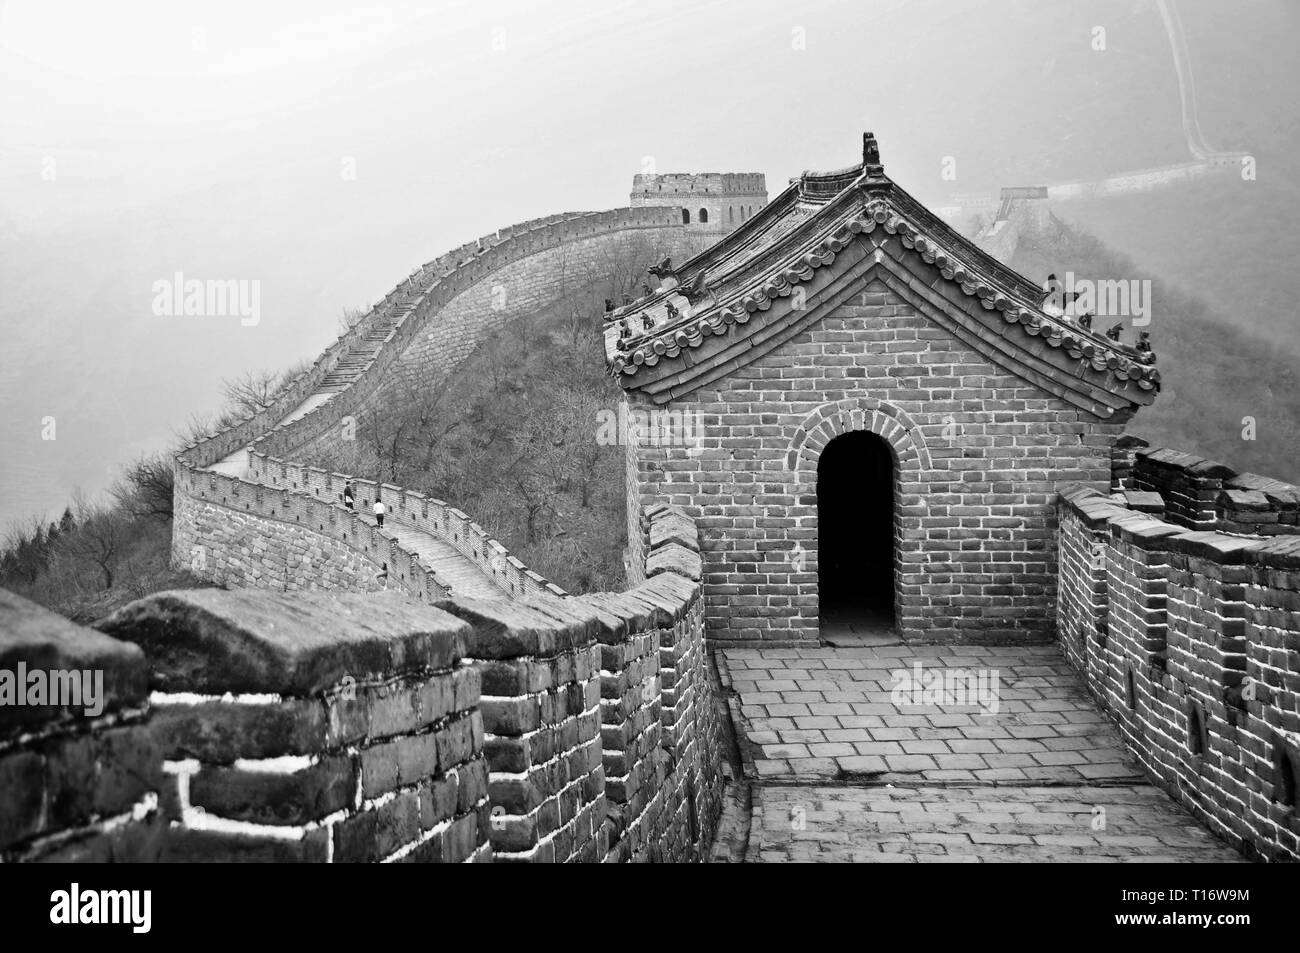 Great wall of China in Mutianyu near Beijing, black and white - Stock Image